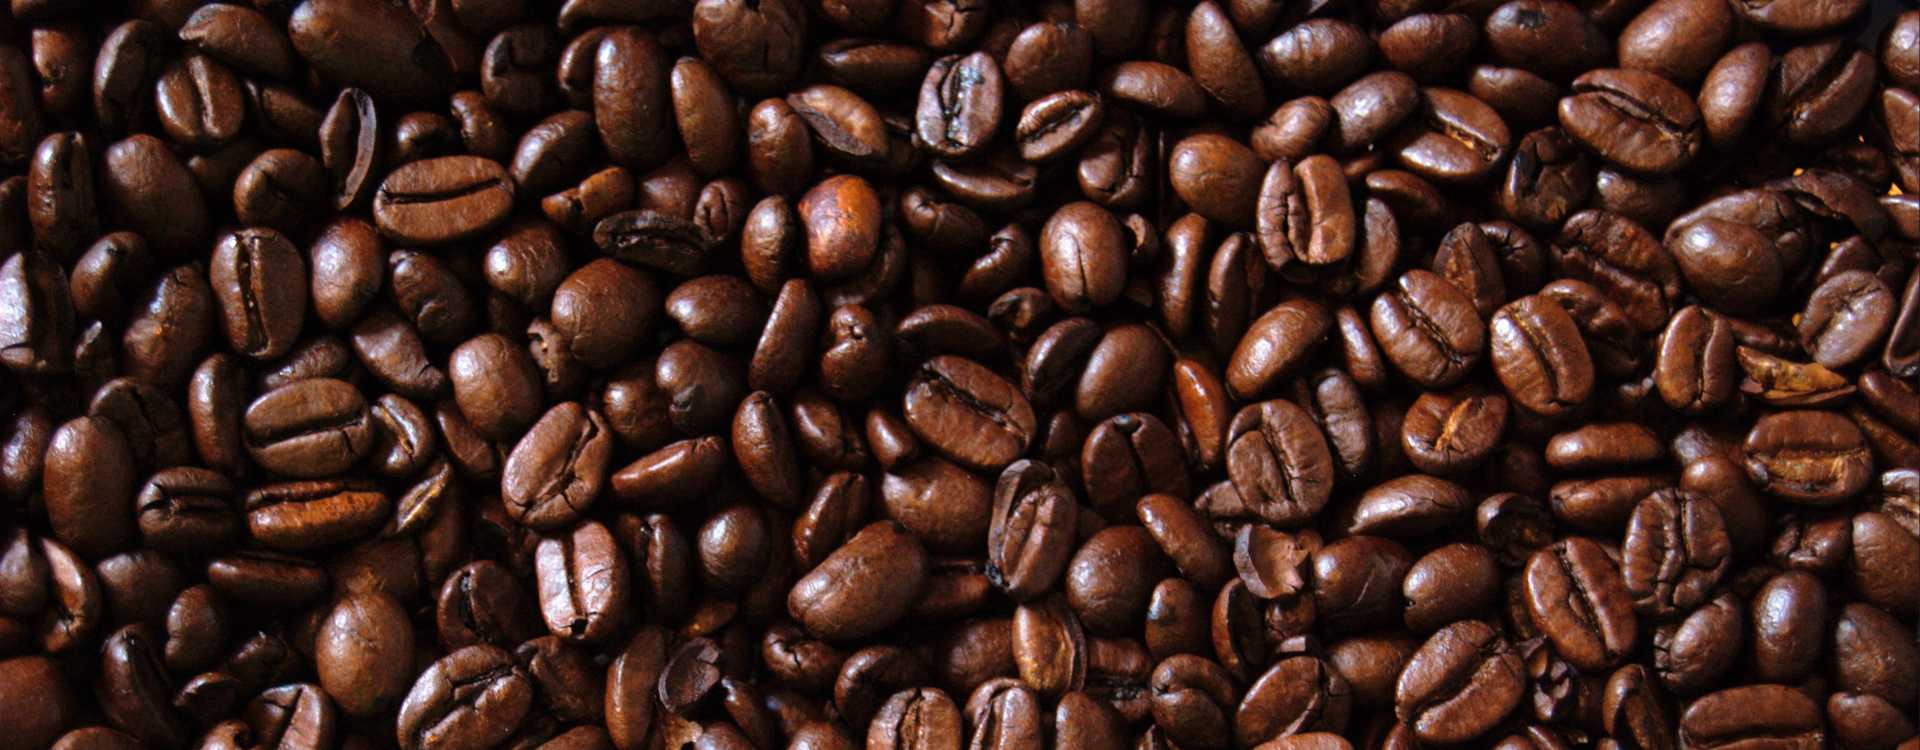 We also have free coffee available 24 hours